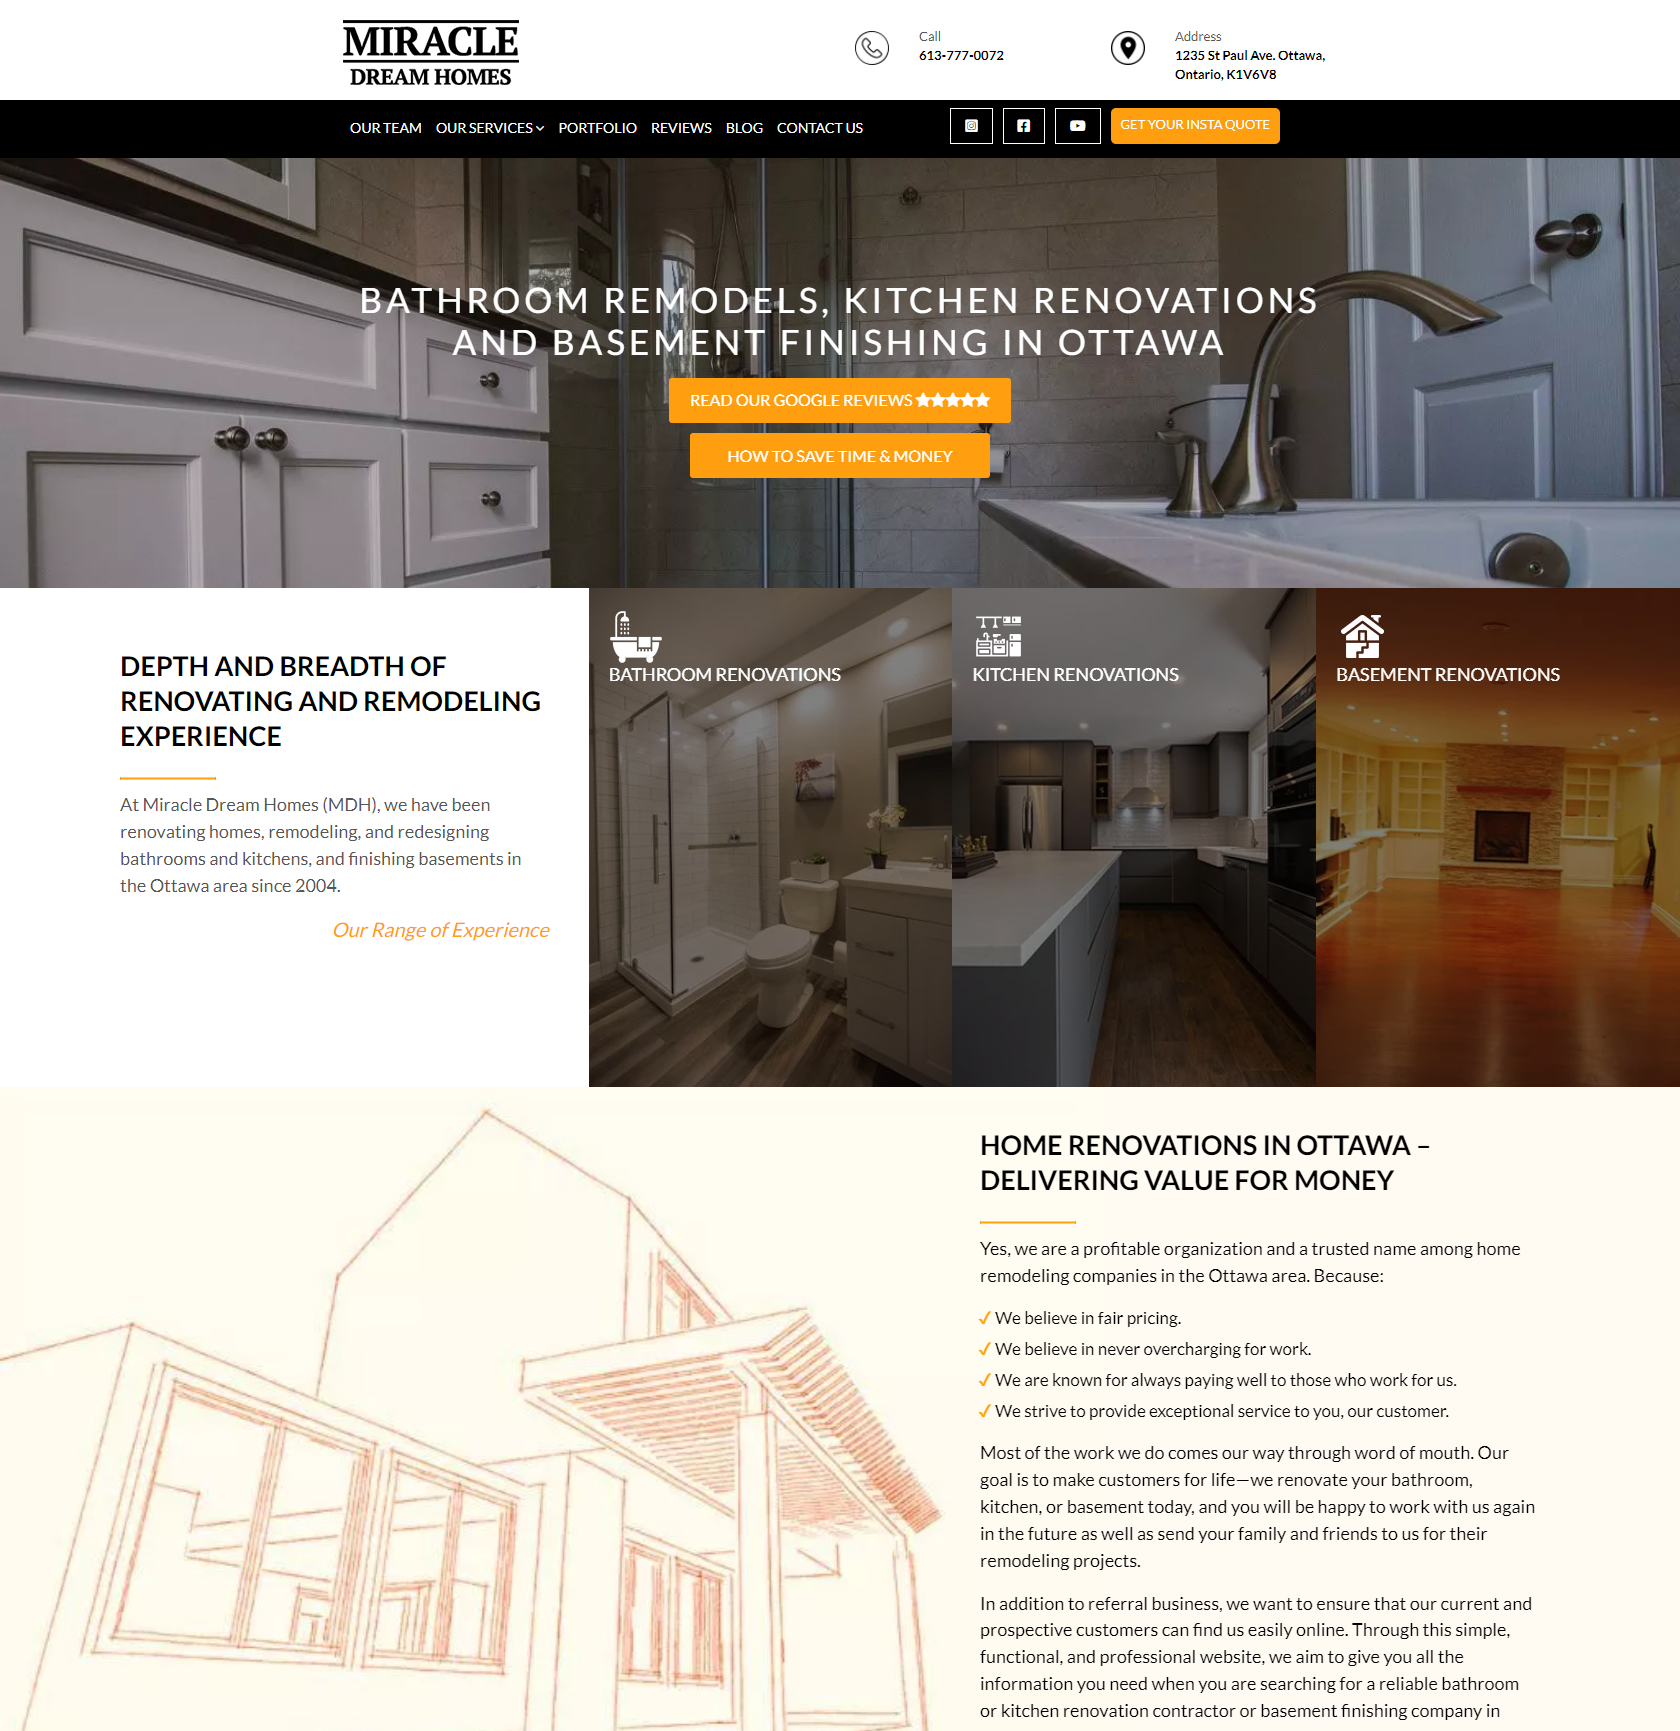 Miracle Dream Homes image